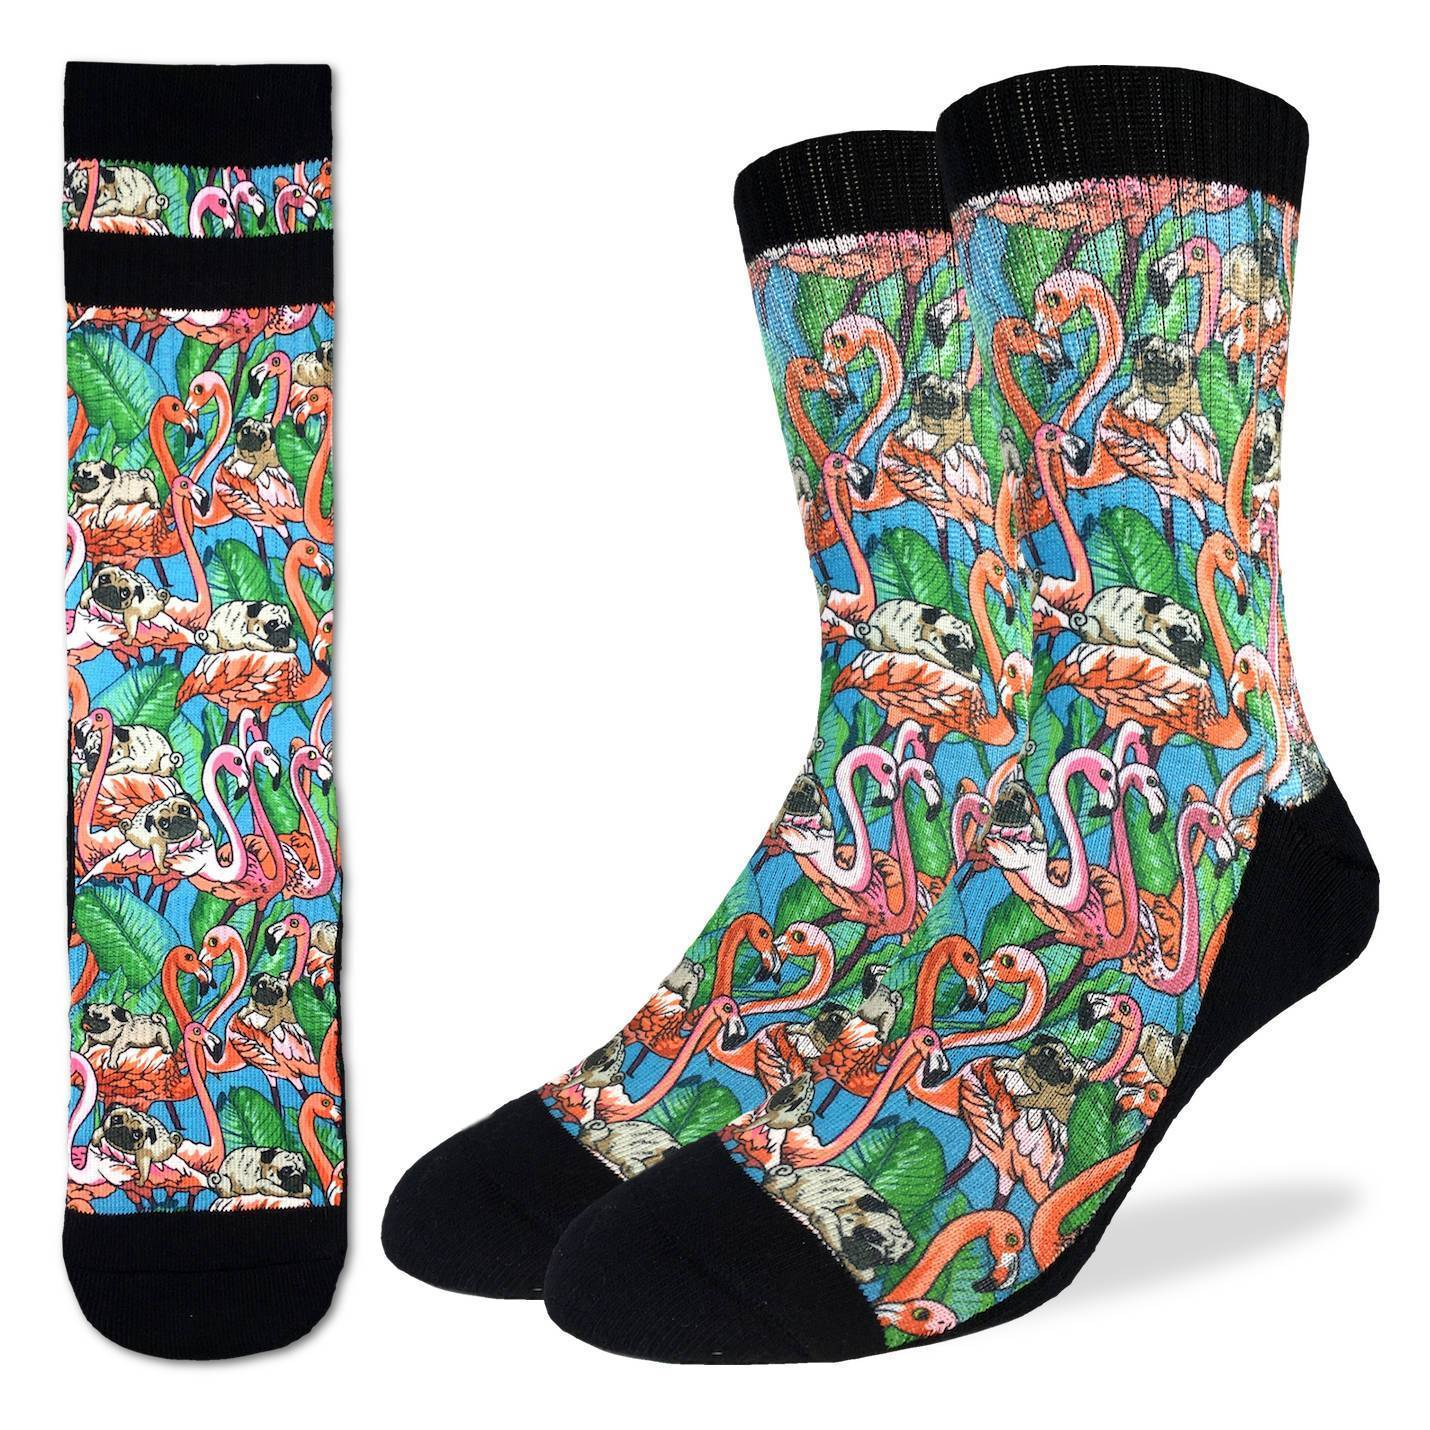 Men's Pugs & Flamingos Socks - Good Luck Sock